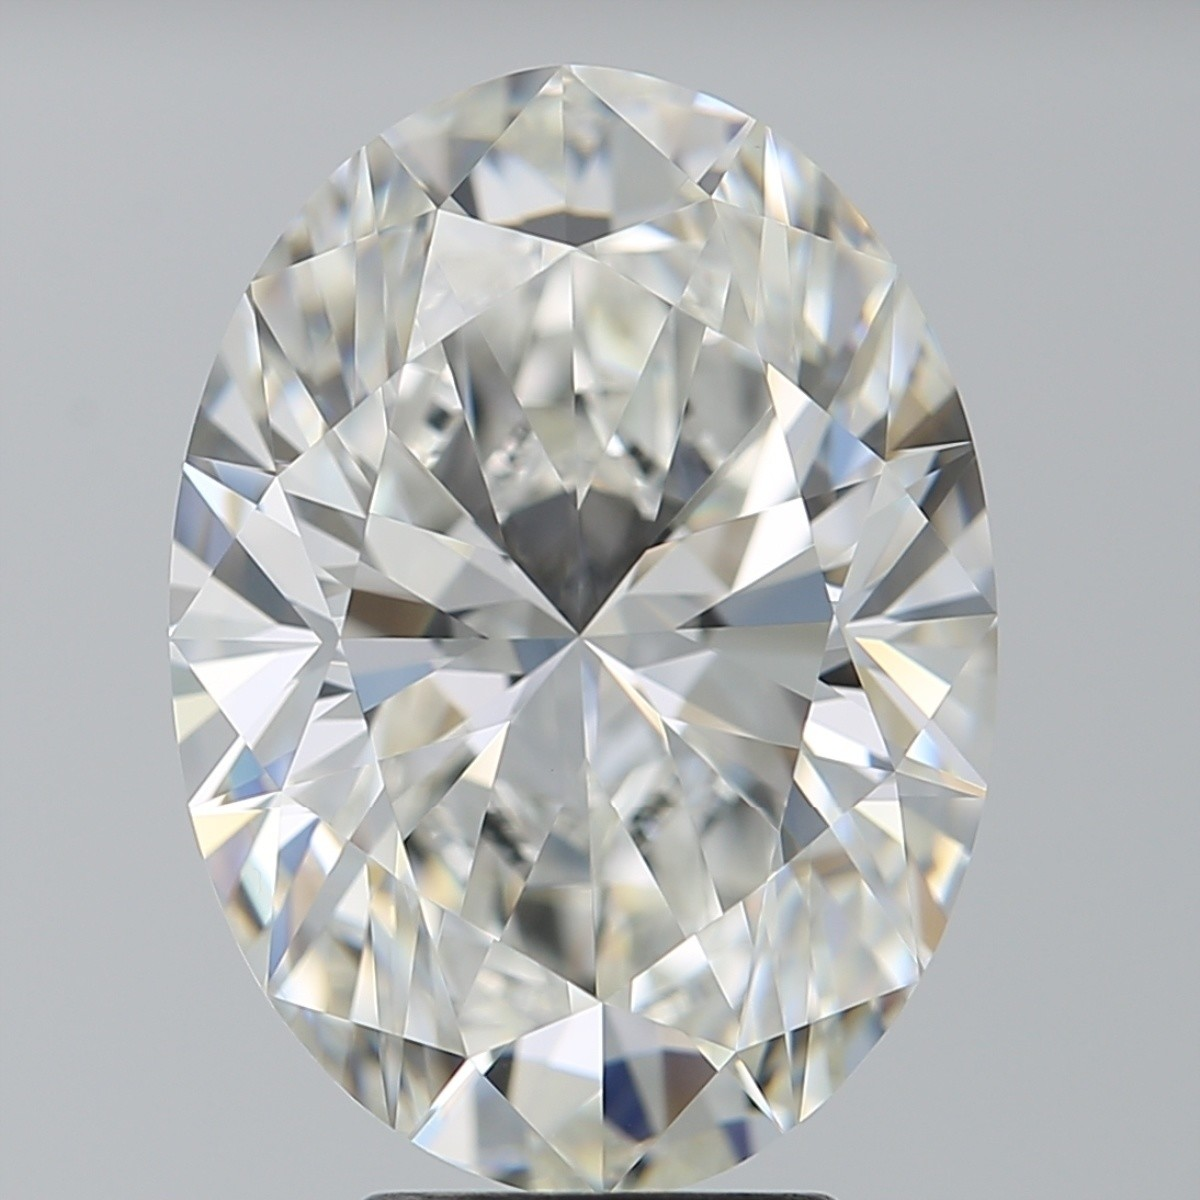 5.02 Carat Oval Diamond (H/VVS2)